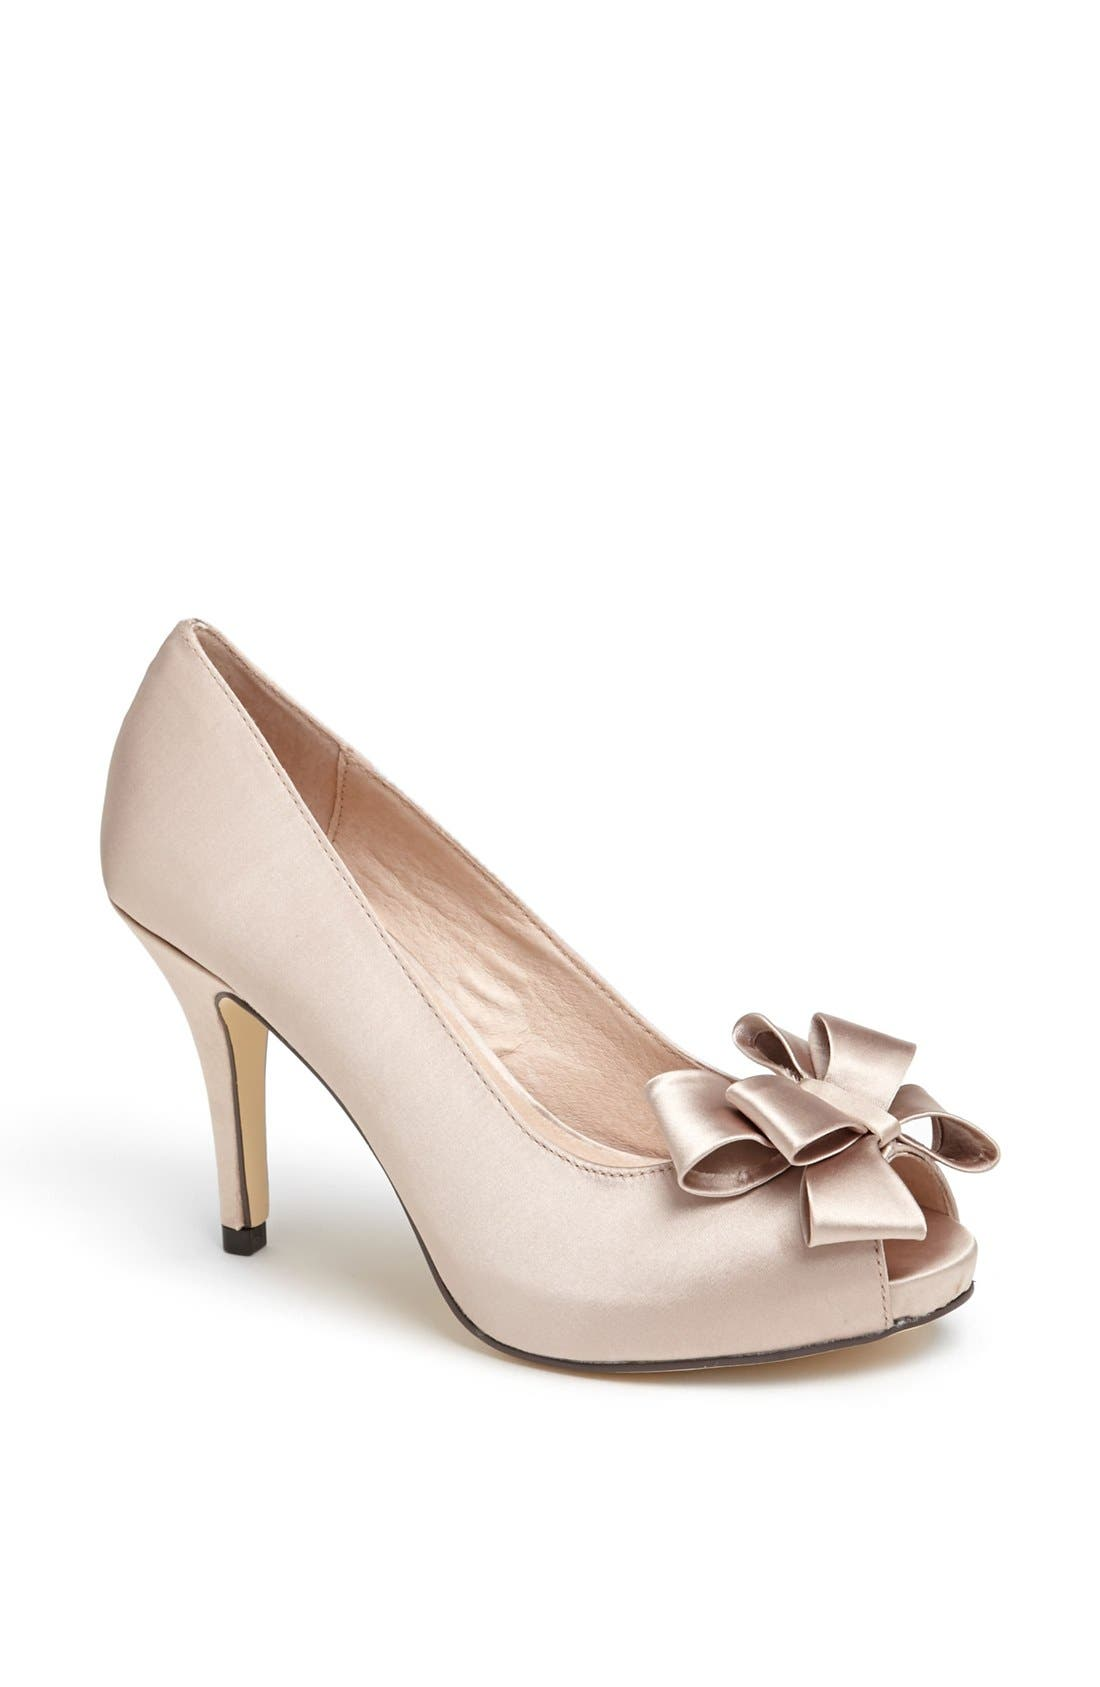 Bow Peep Toe Pump,                         Main,                         color, 021